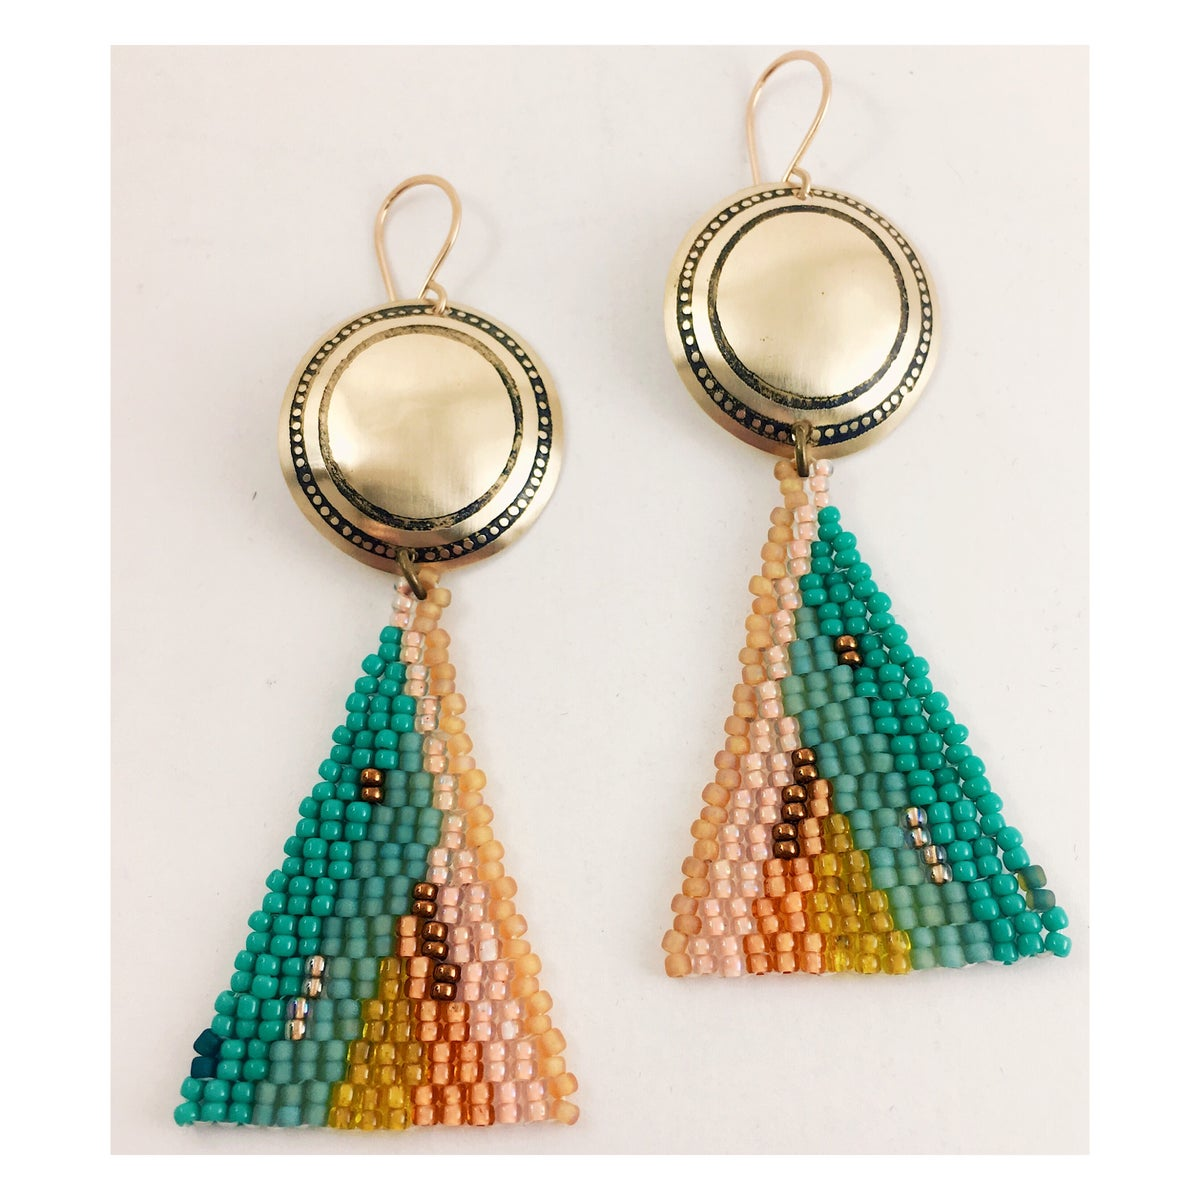 Image of Sugar Candy Mountain Earrings